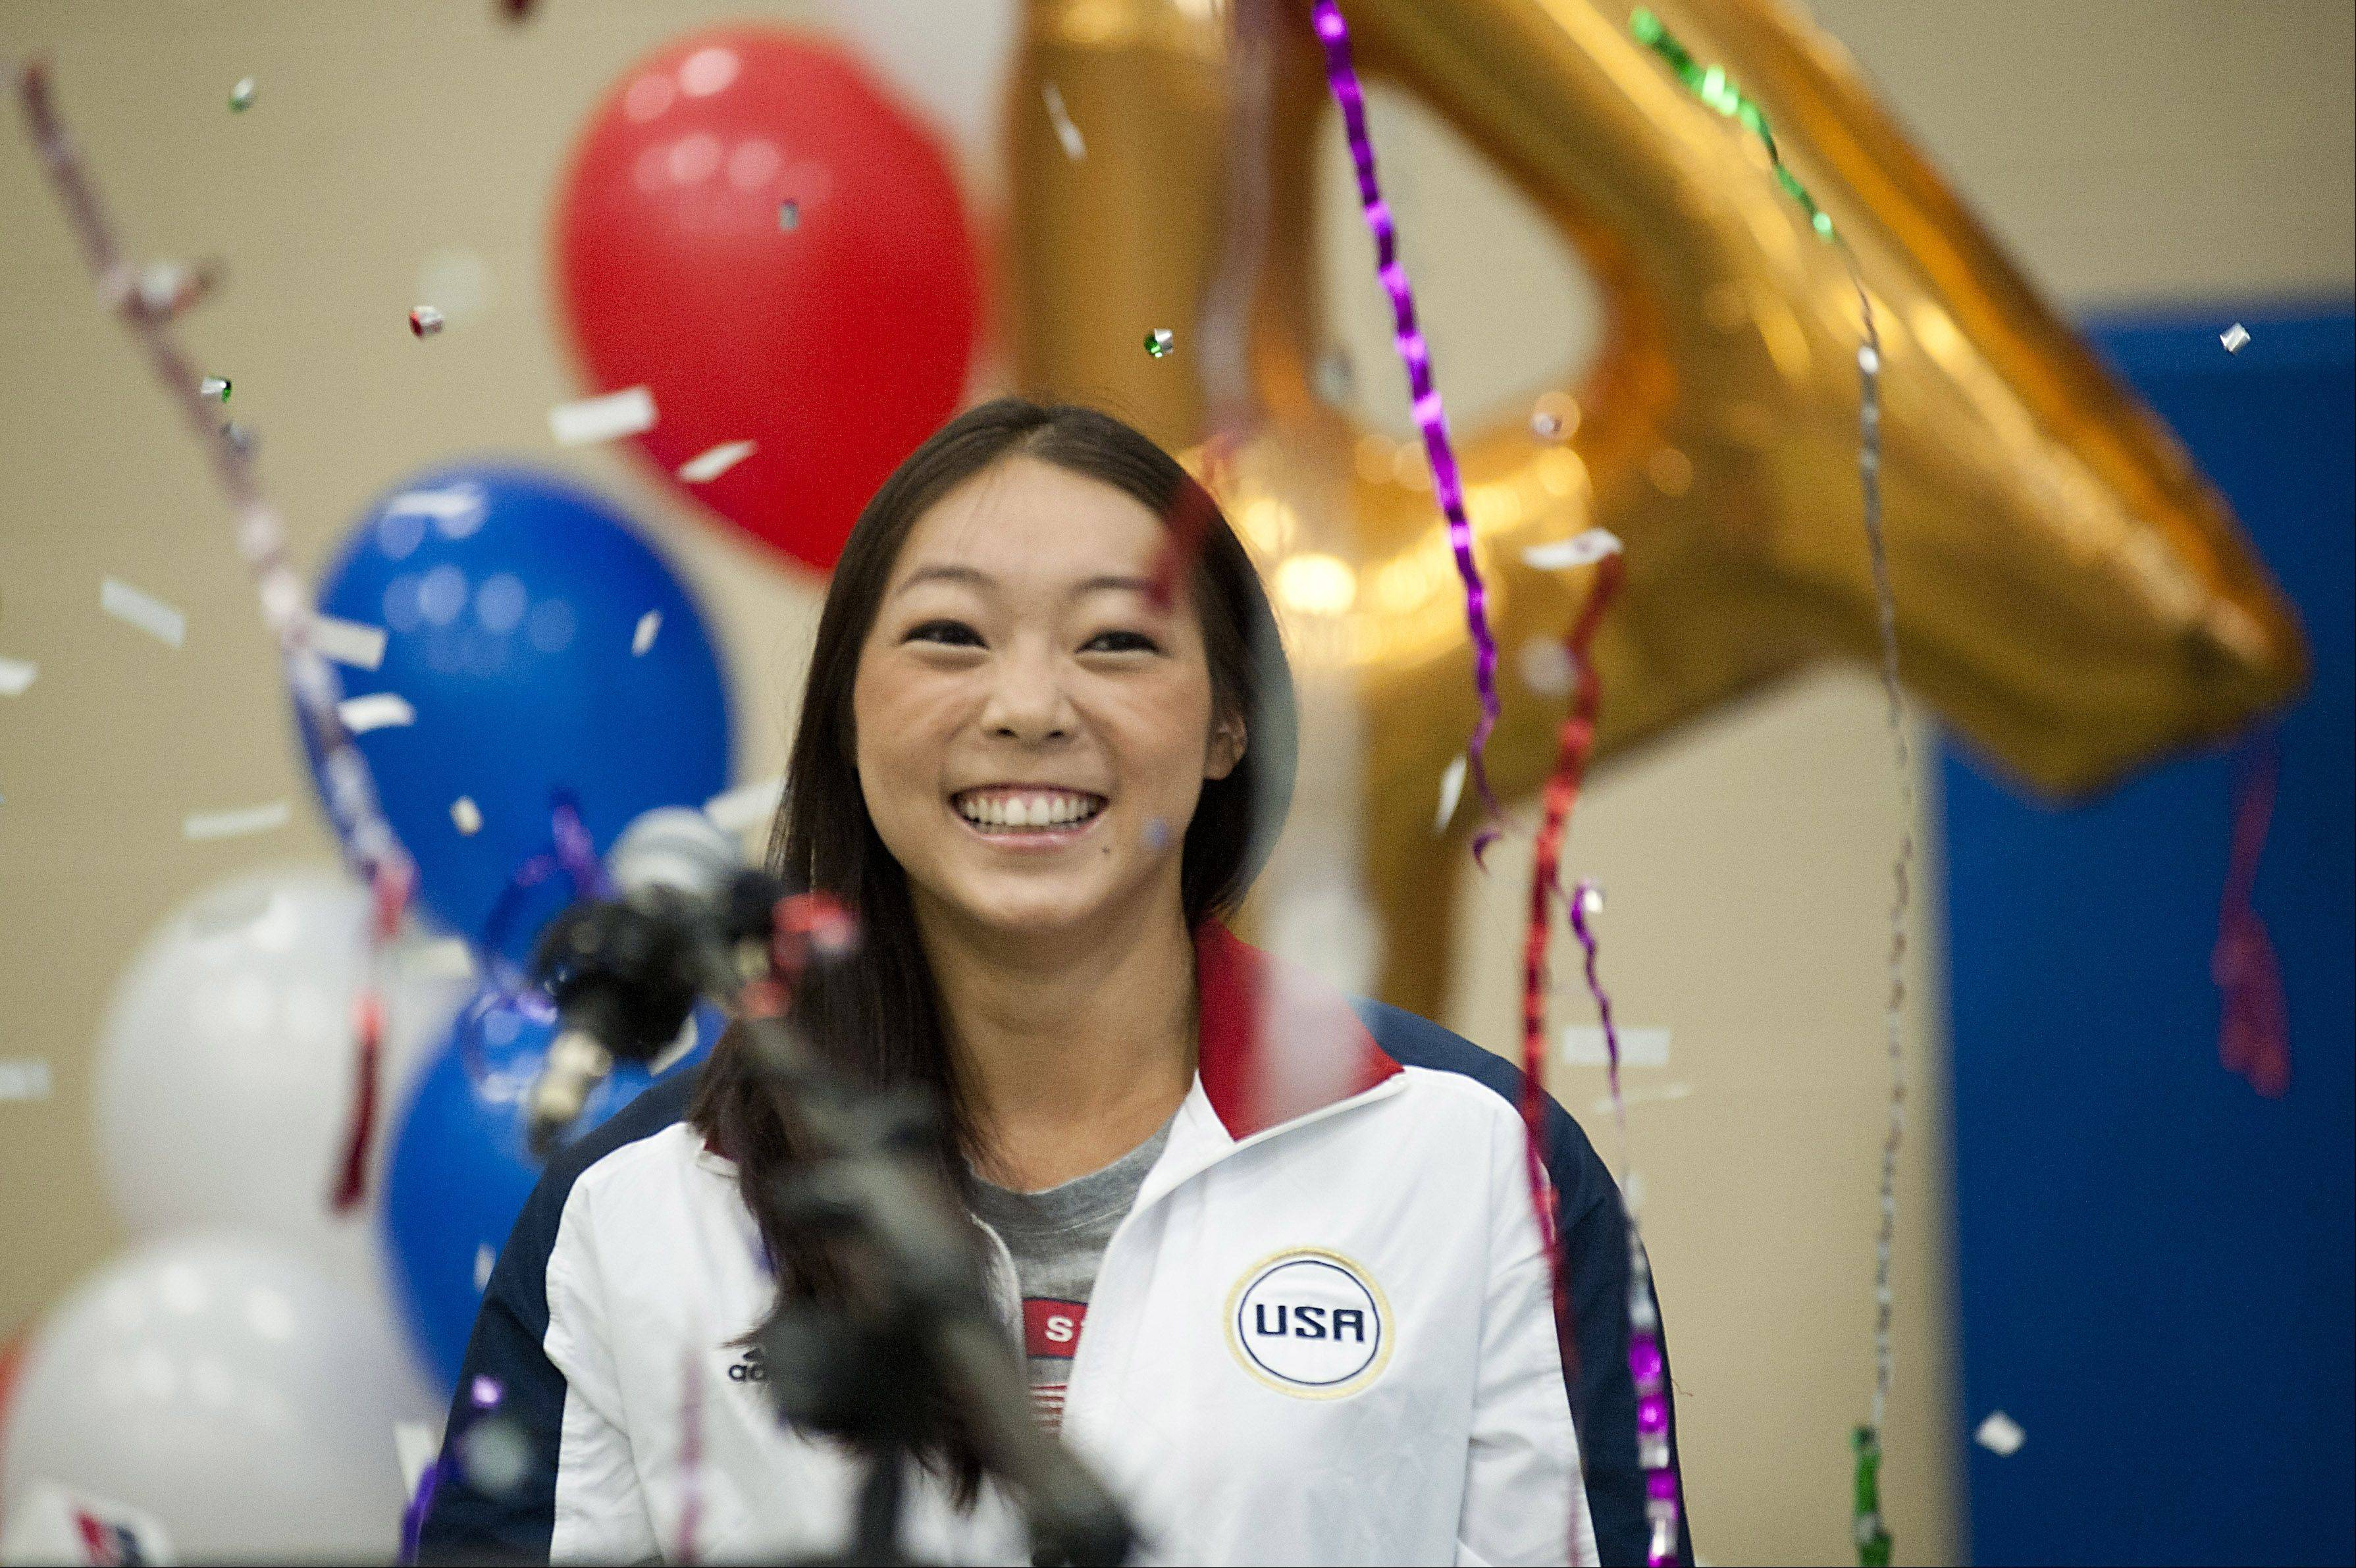 Fans cheer and shower Anna Li with confetti in Aurora. Li was chosen as an alternate member of the U.S. Women�s Gymnastics Team for the upcoming London Olympic Games.